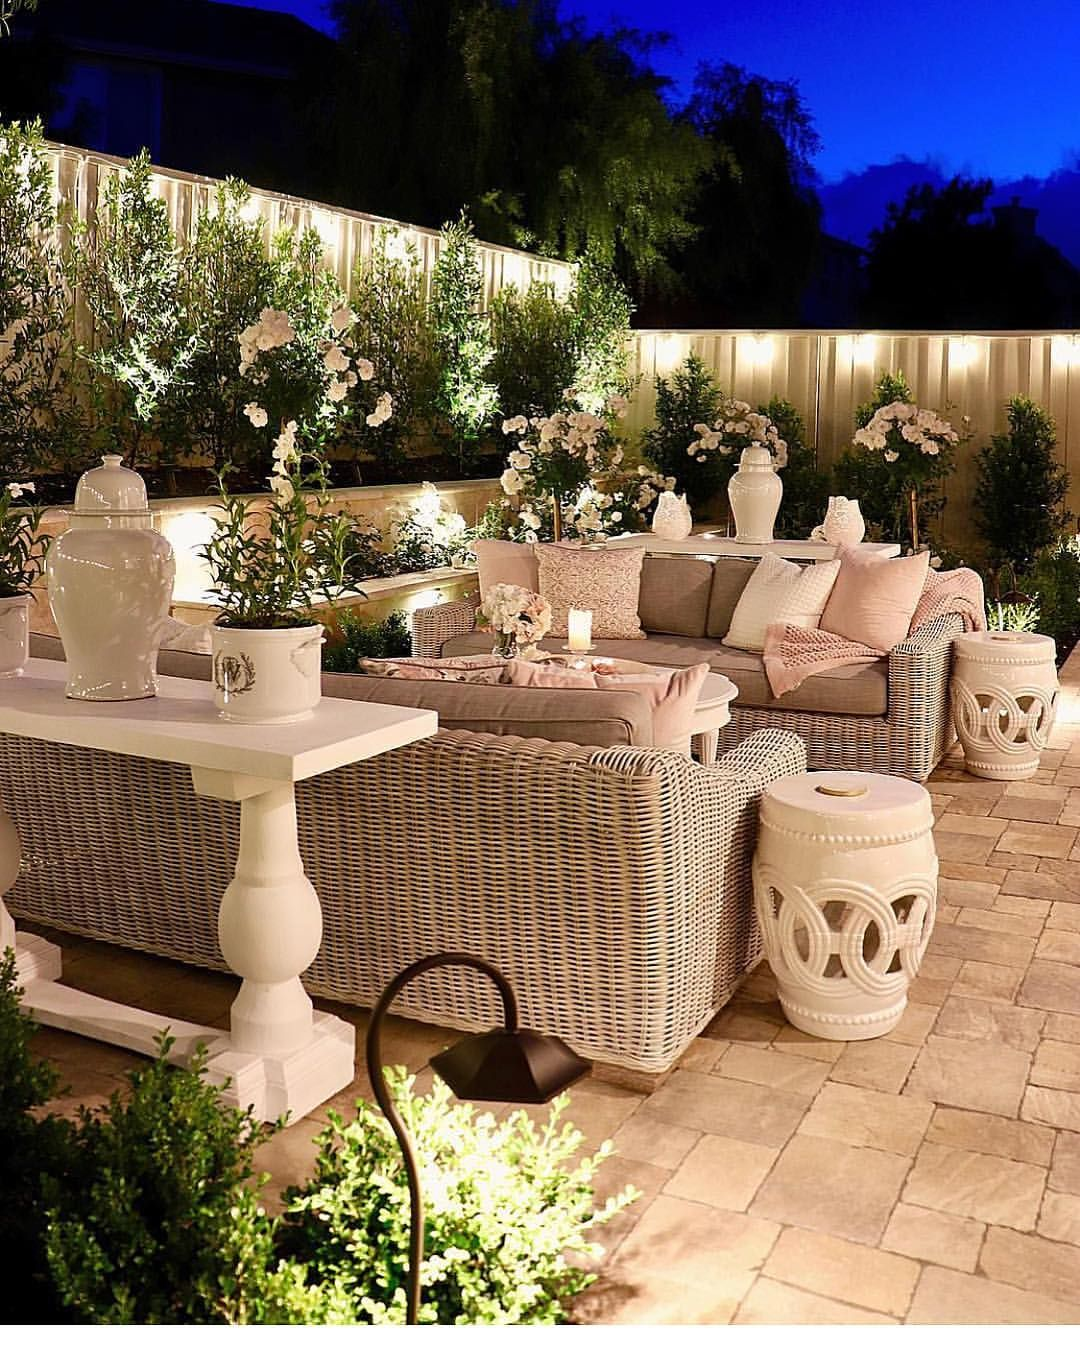 Brilliant backyard ideas diy patio #outdoor #backyard #backyardlandscaping #backyardgarden #smallbackyard